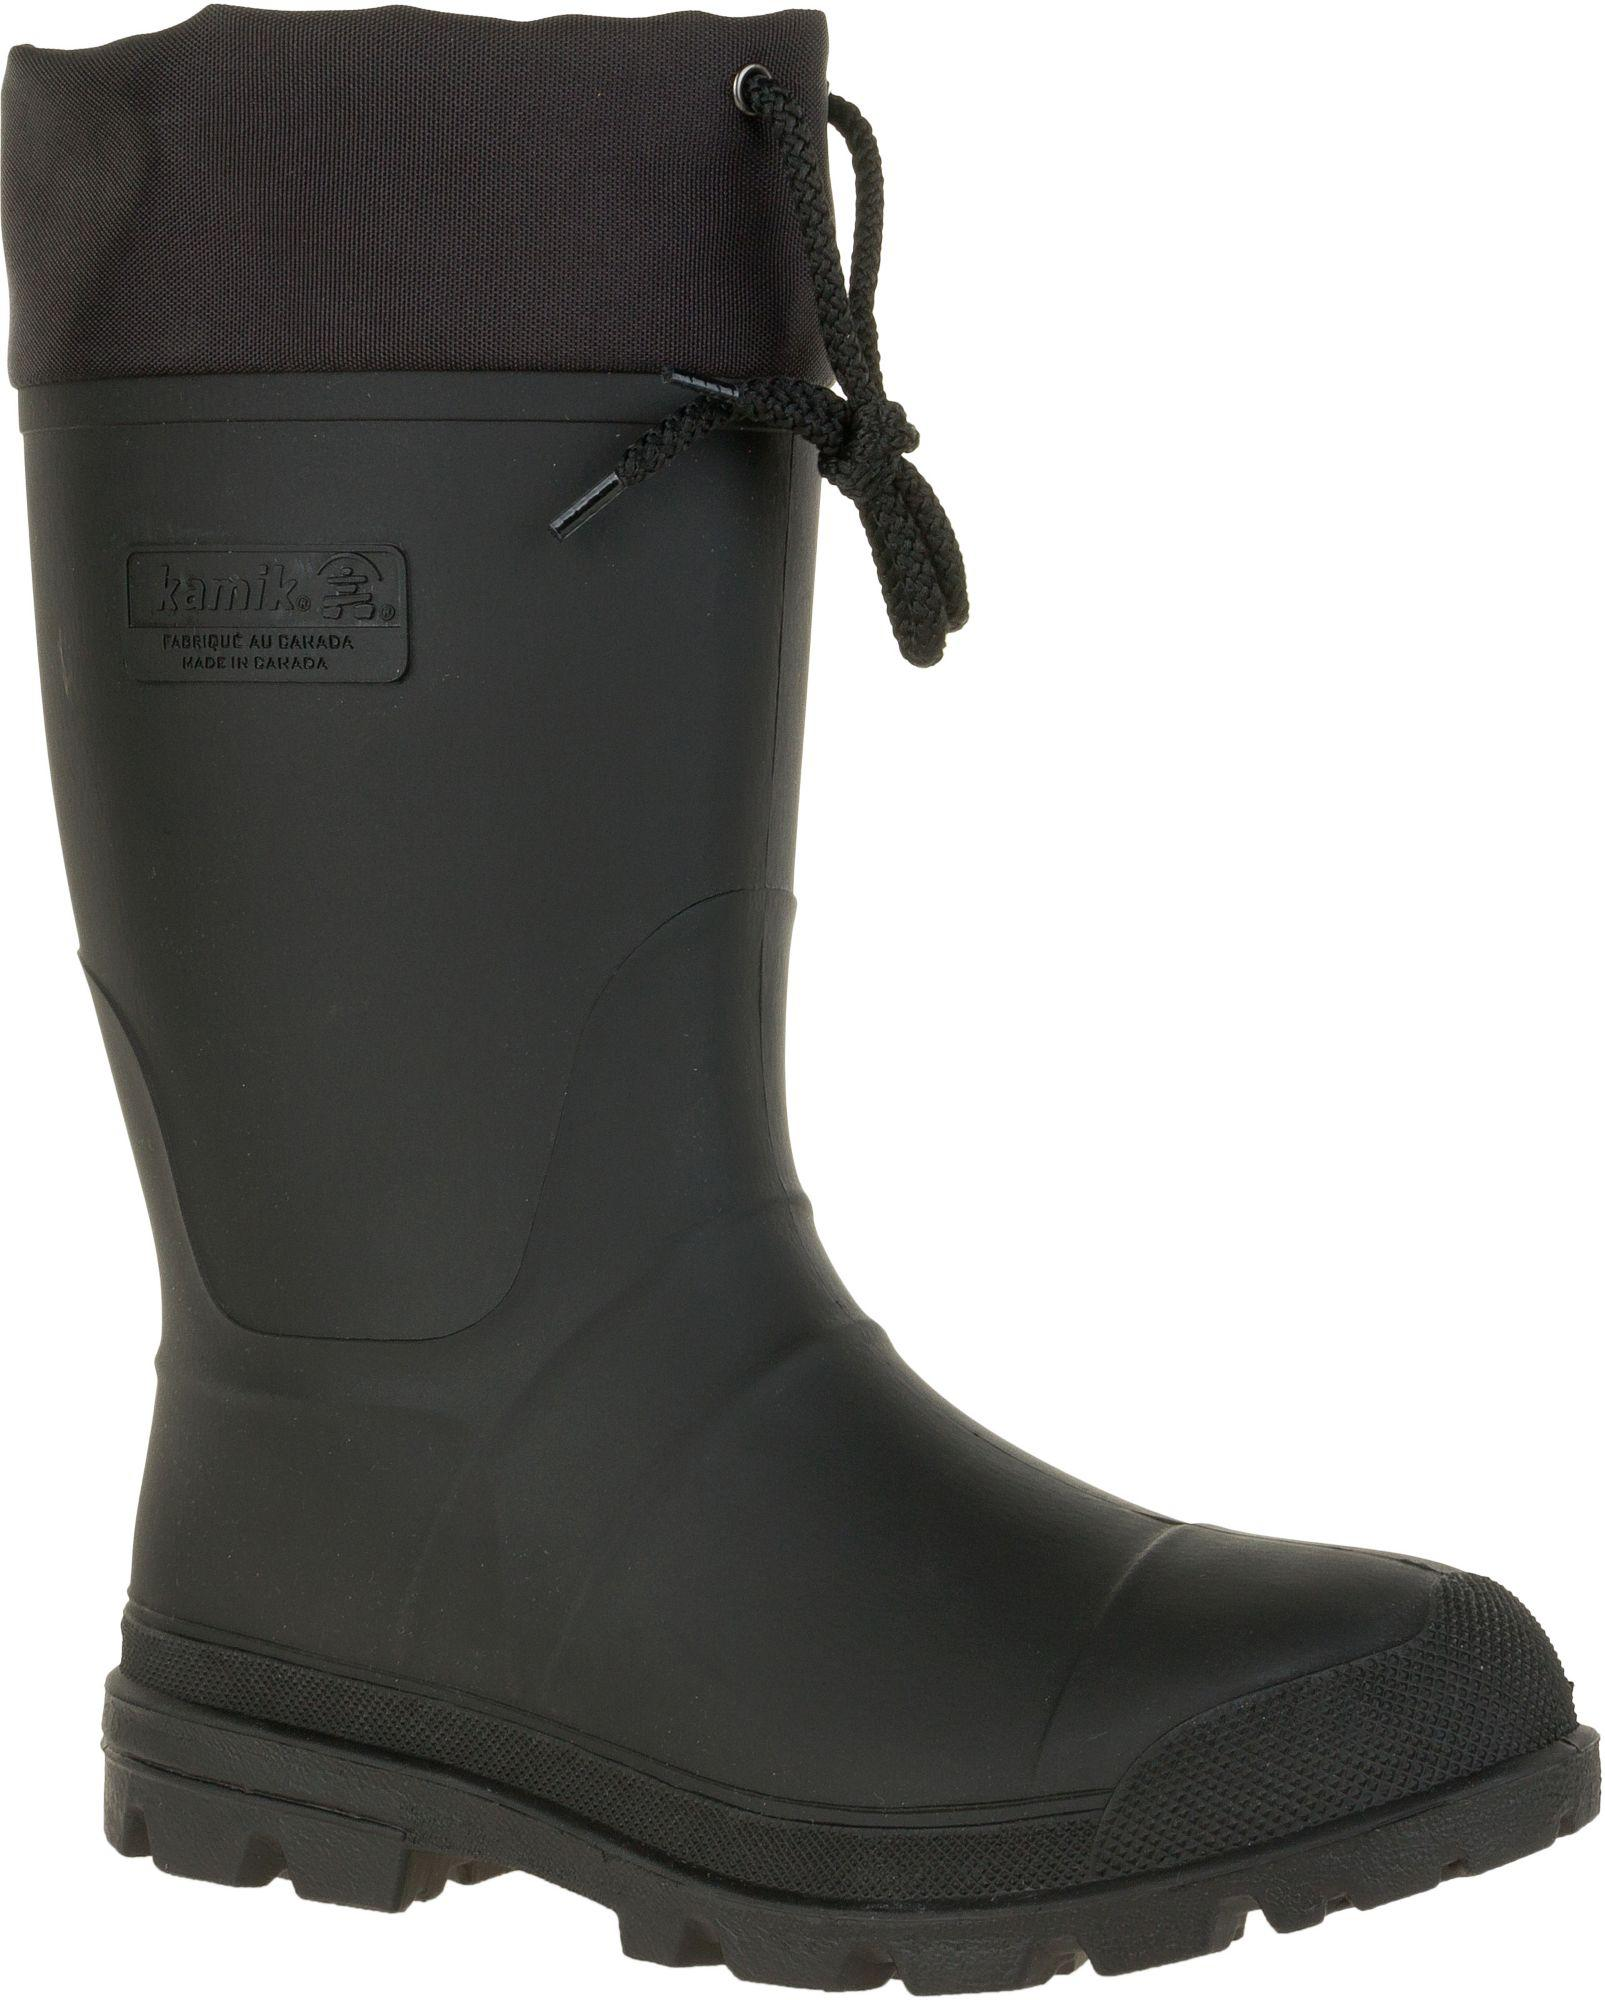 79b886dc36 Lyst - Kamik Icebreaker Insulated Rubber Hunting Boots in Black for Men